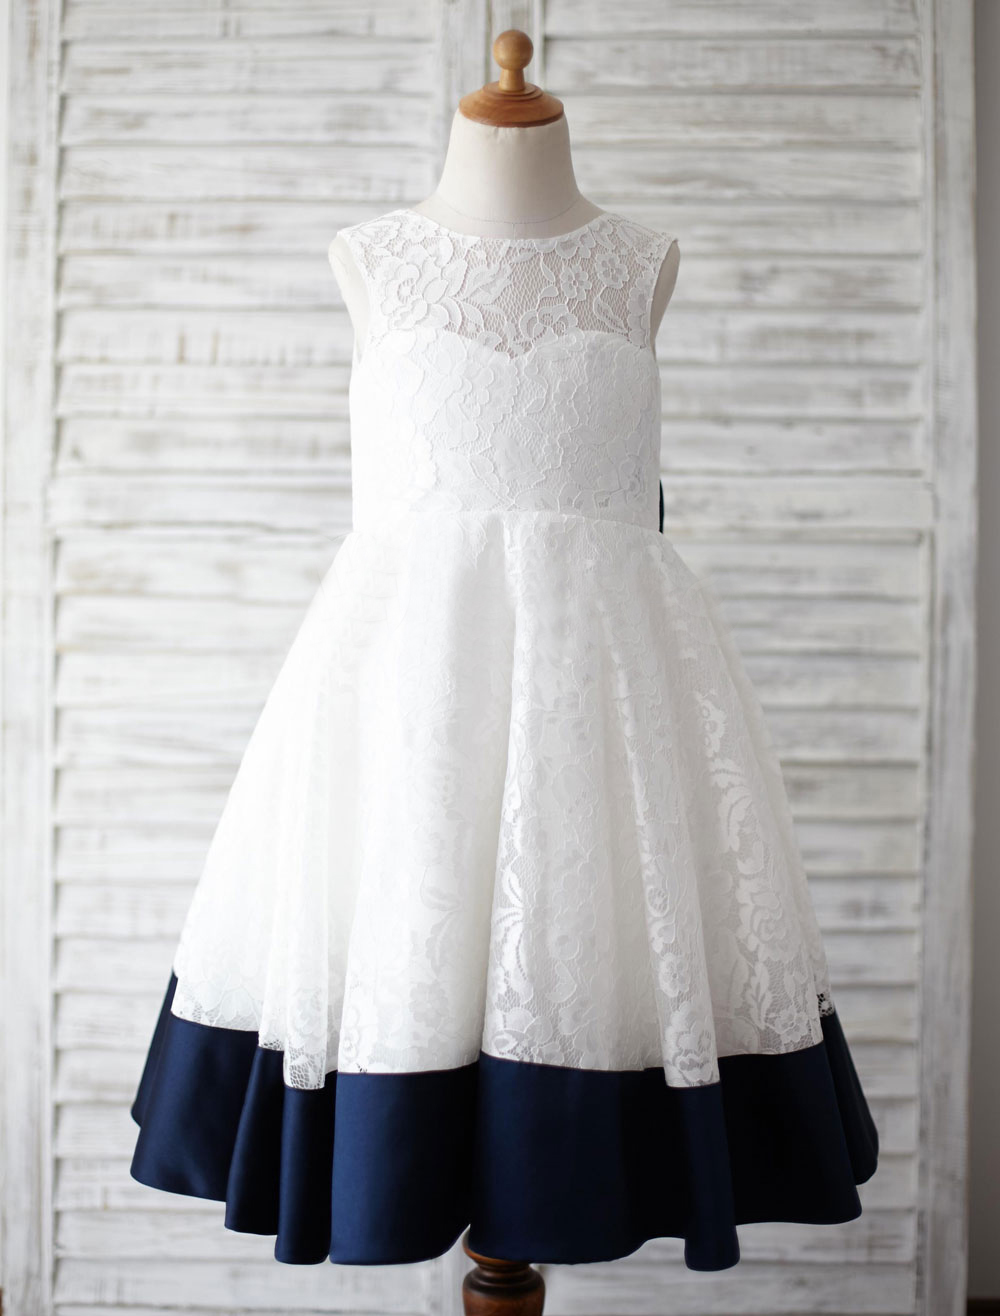 Lovely whitenavy blue lace jewel ankle flower girl dresses princess 9004aad2 1 izmirmasajfo